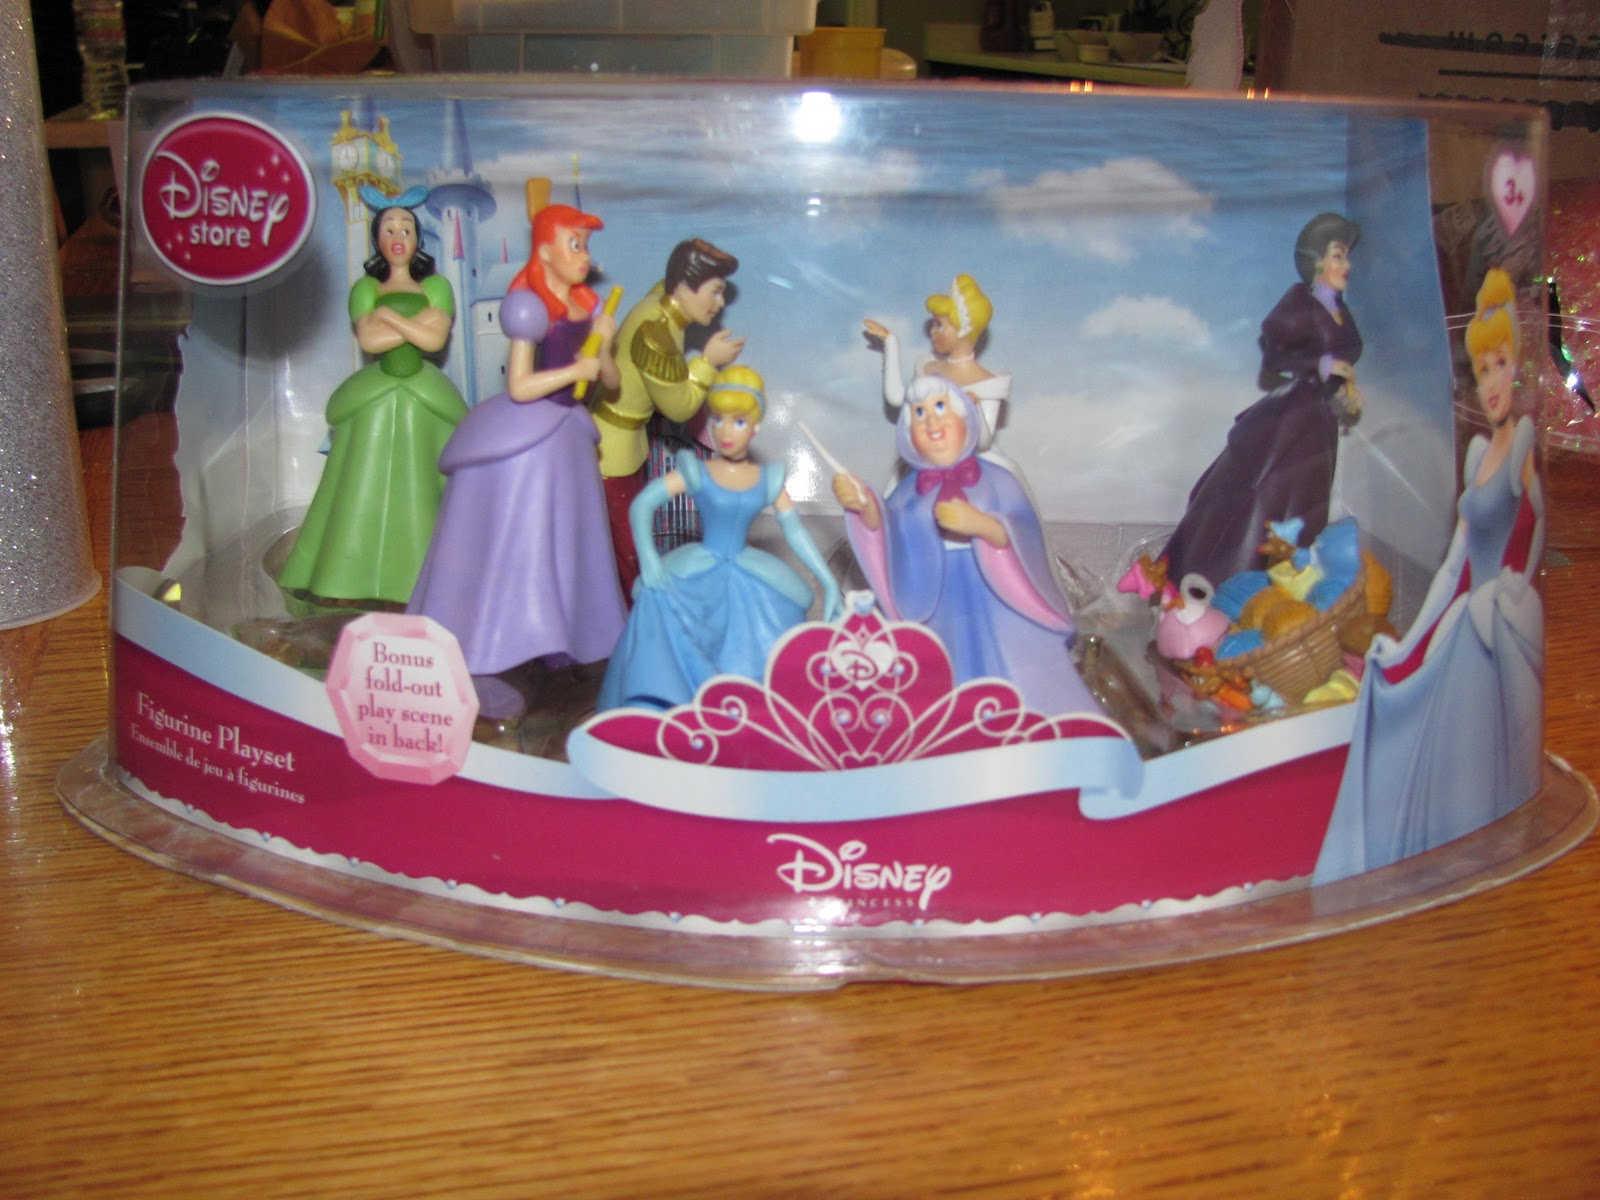 Disney tree ornaments - The Theme We Picked For Her Tree Is Cinderella She Loved Princesses I I Had Been Searching For These Ornaments And Holy Expensive